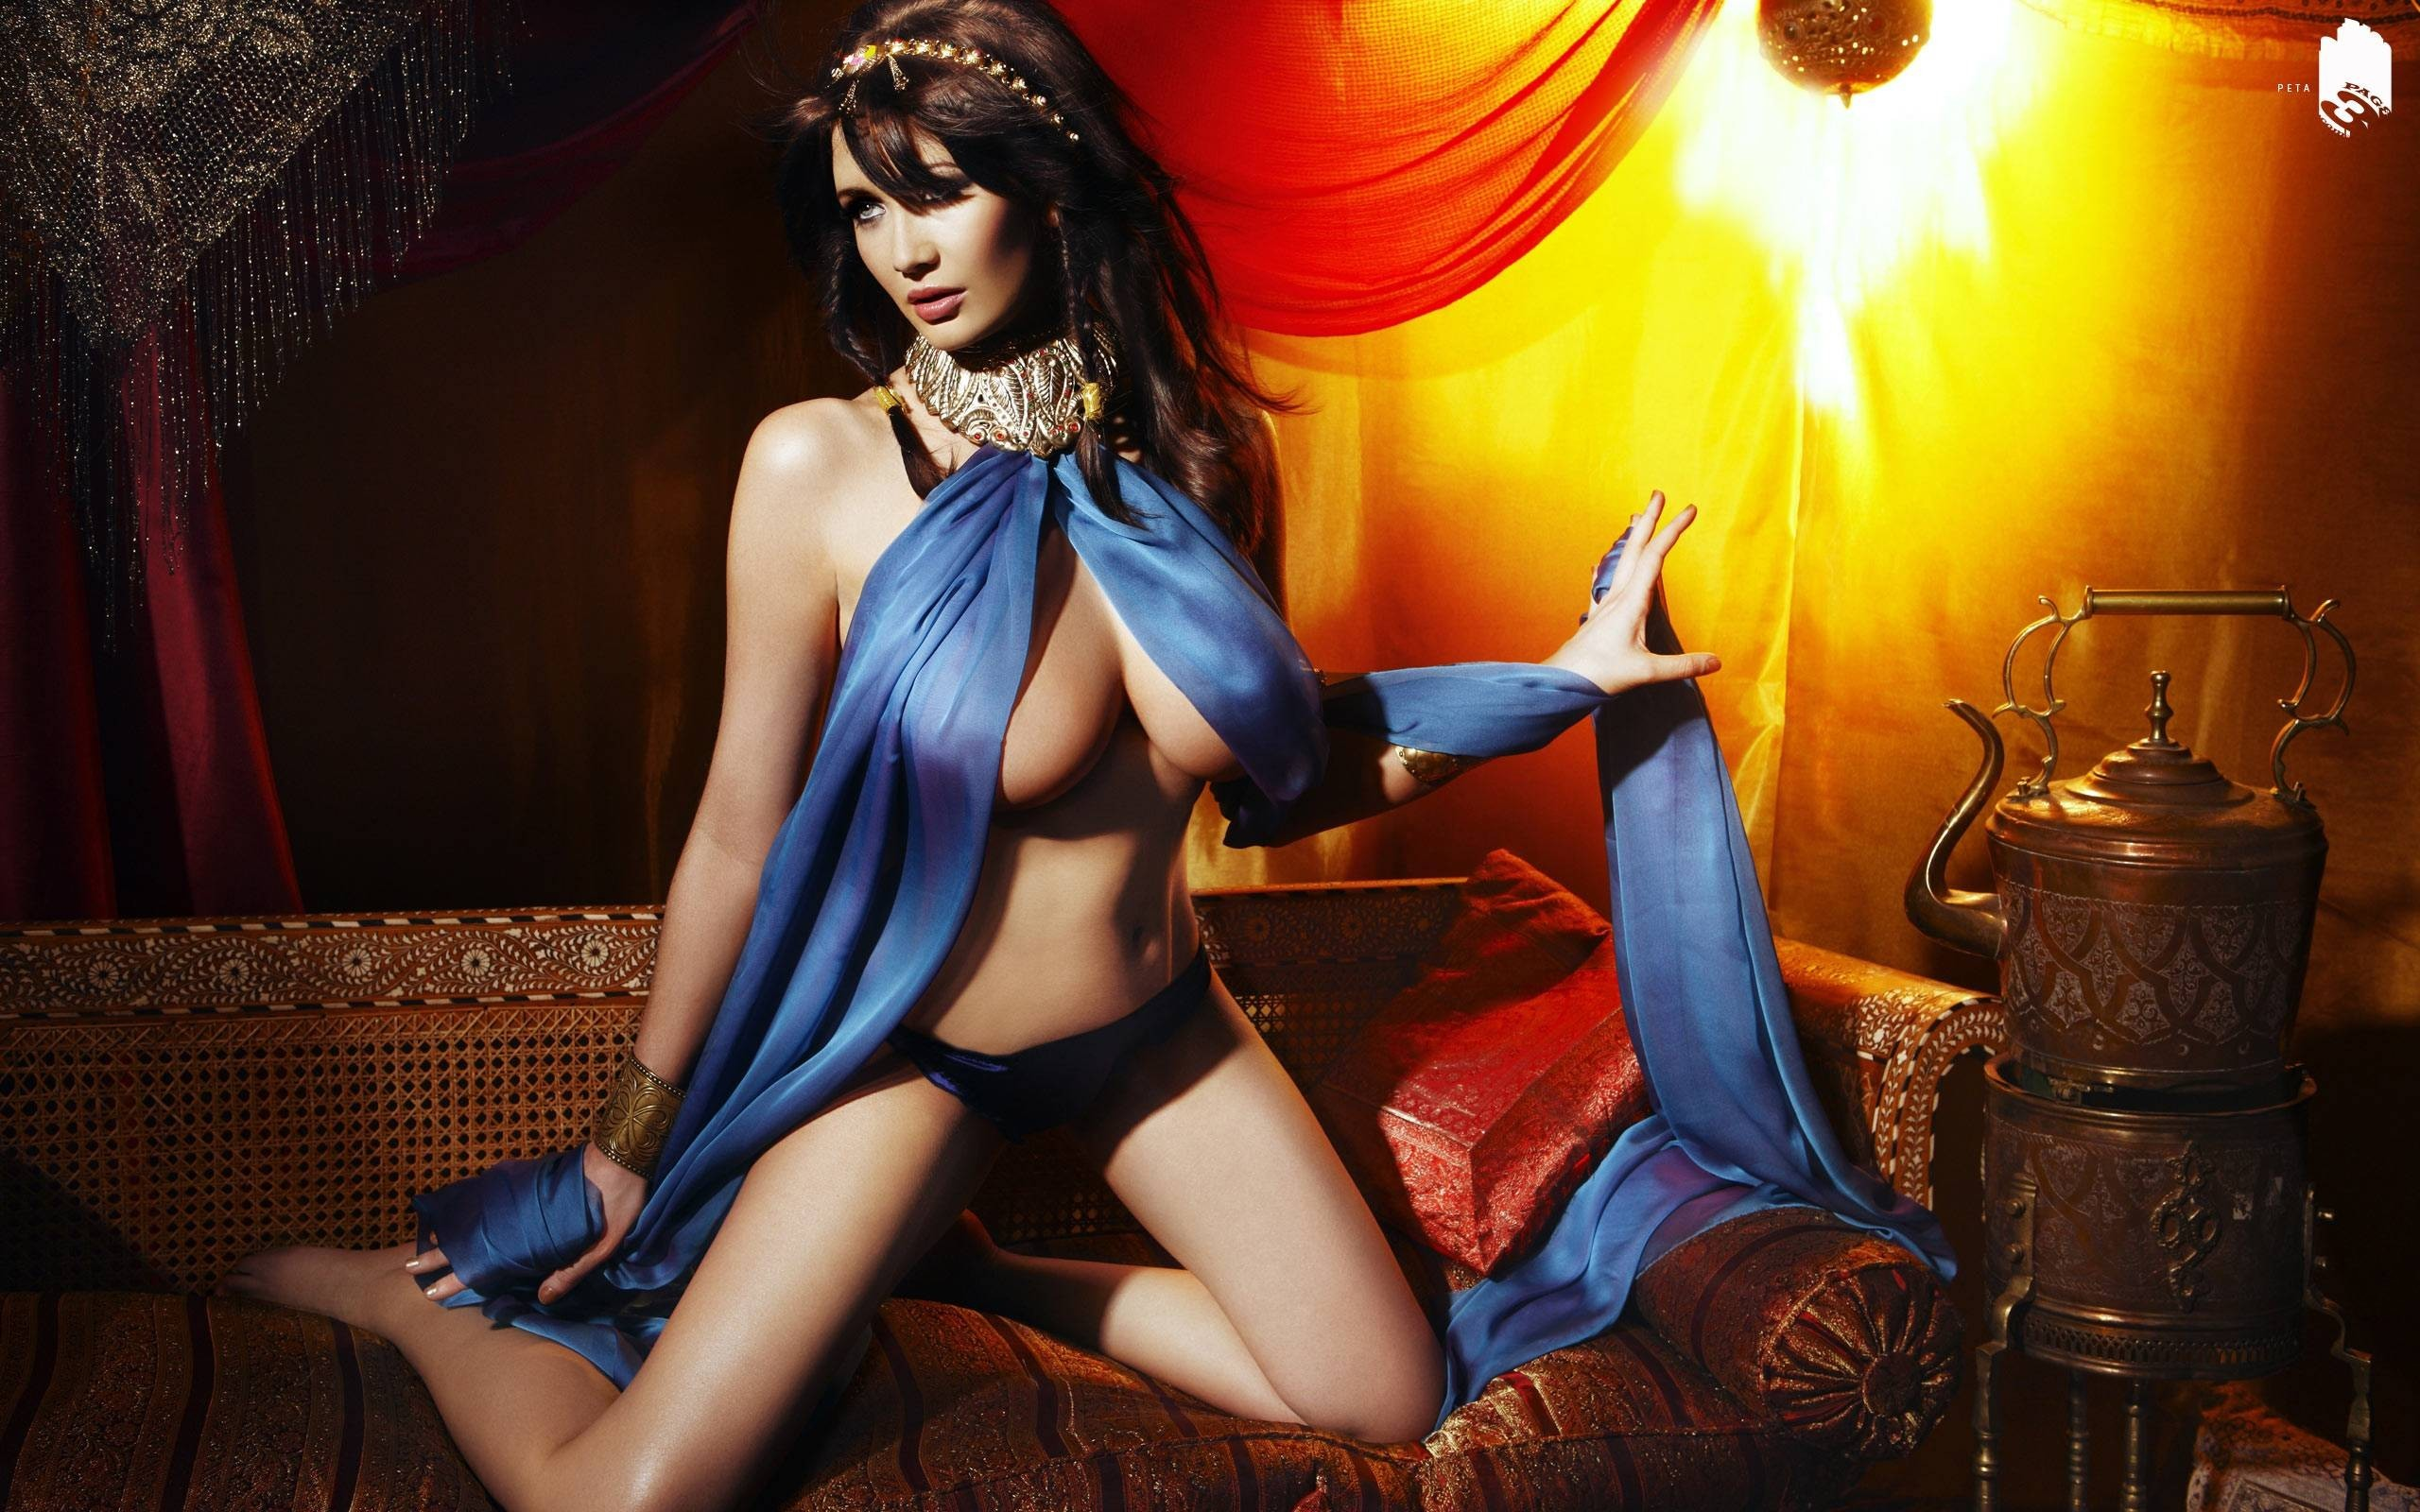 brunettes boobs woman couch HD Wallpaper